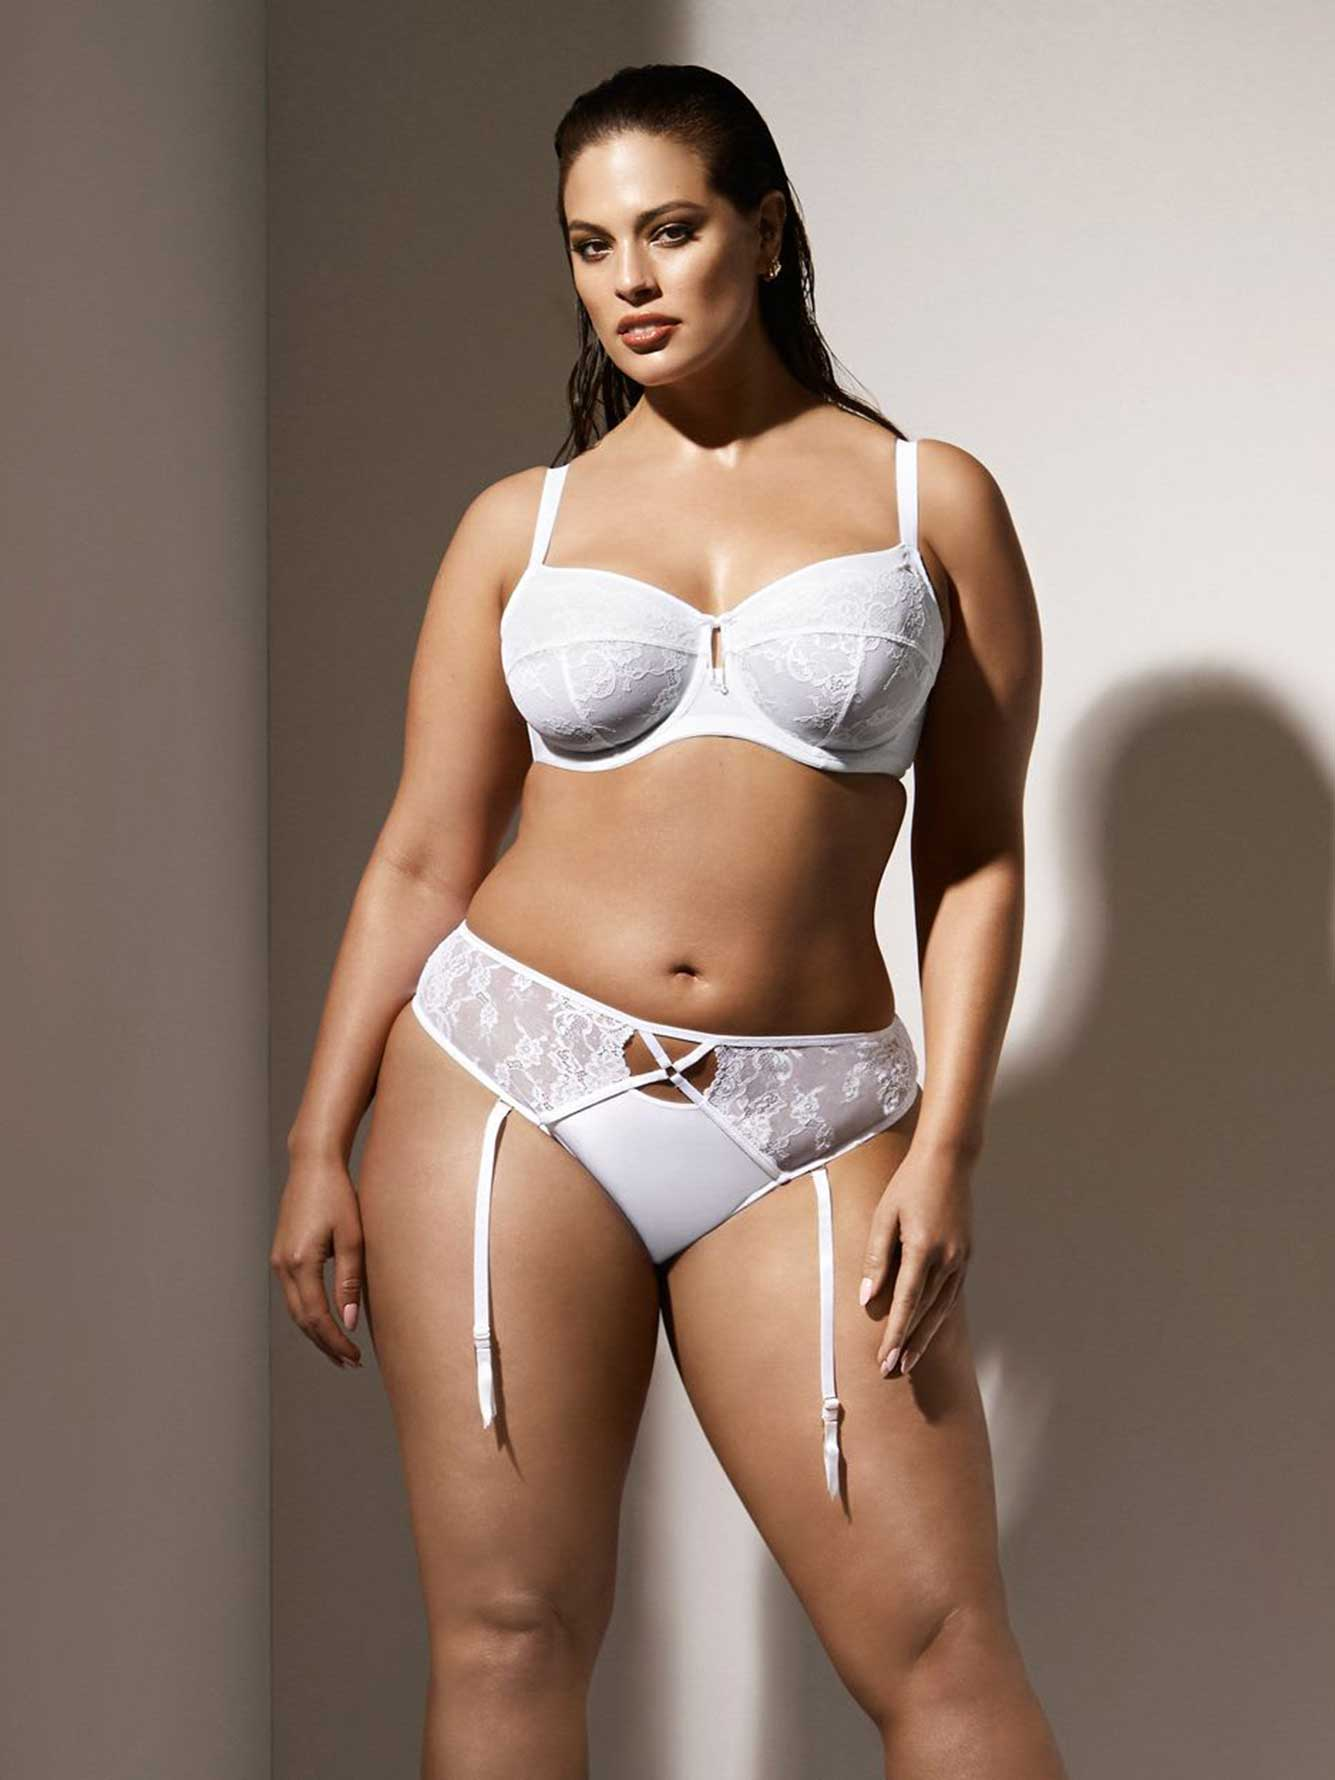 Fappening Pictures Ashley Graham naked photo 2017